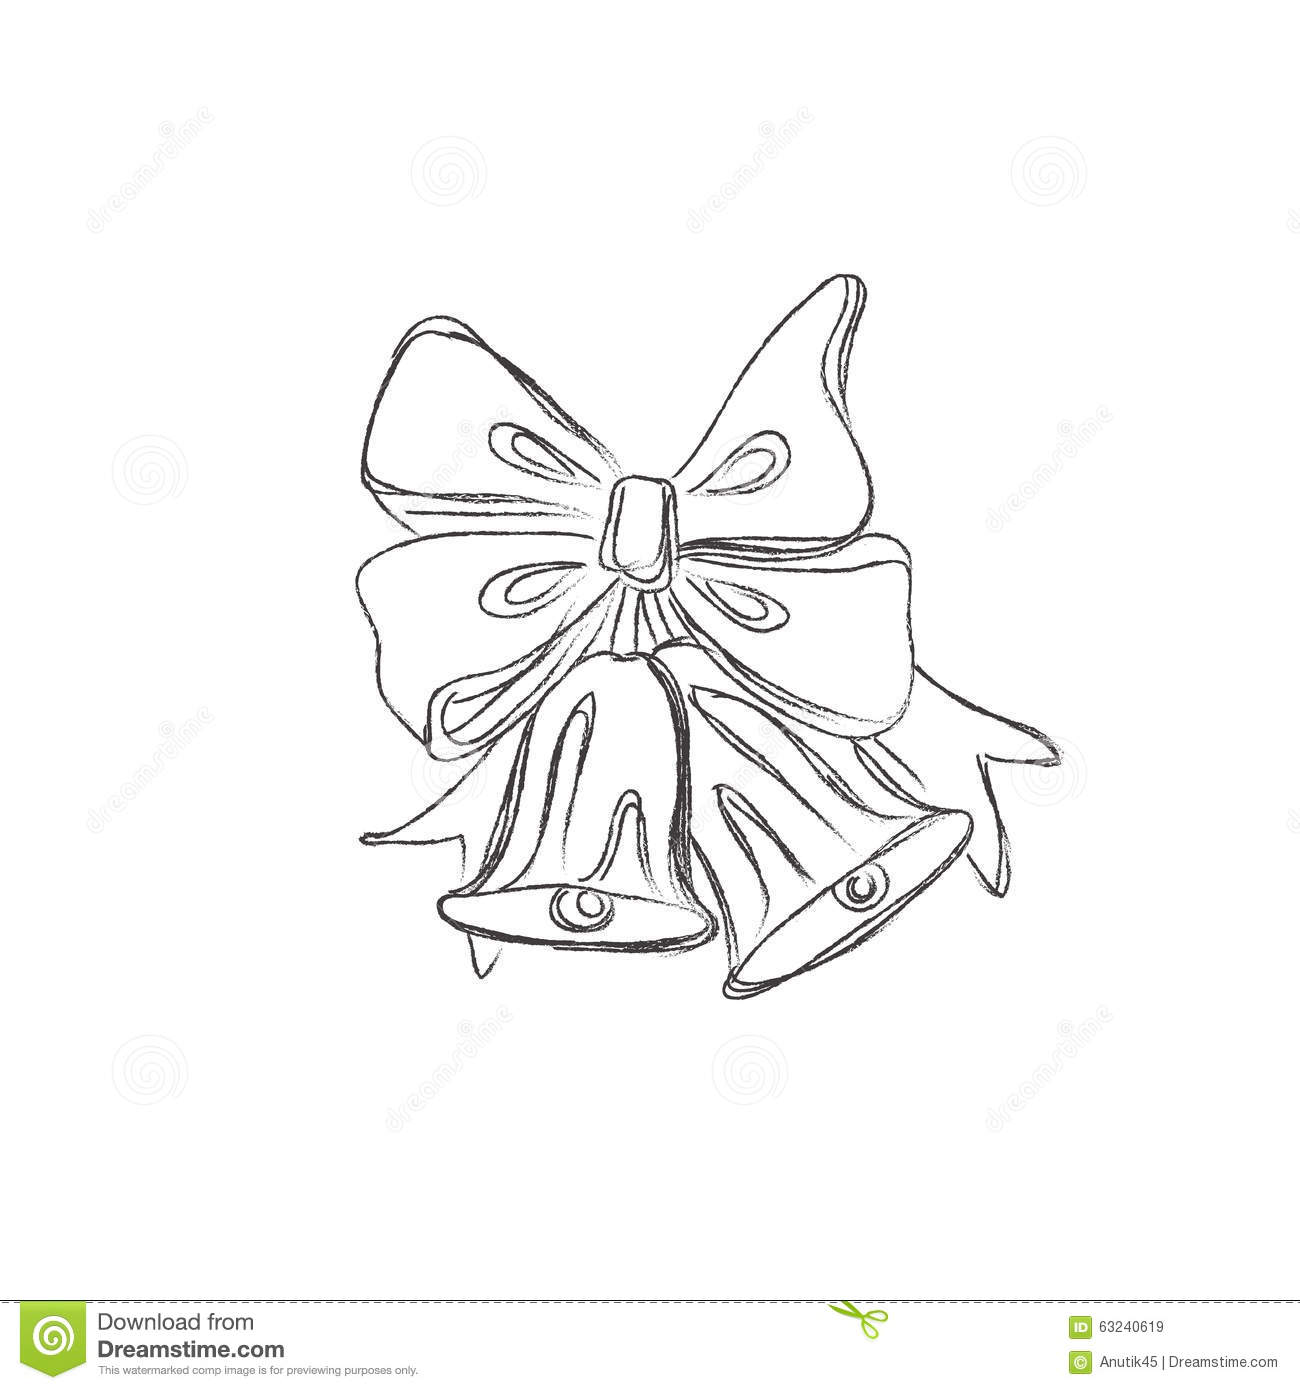 Drawings Of Christmas Decorations.Christmas Decoration Pine Vector Illustration In Sketch